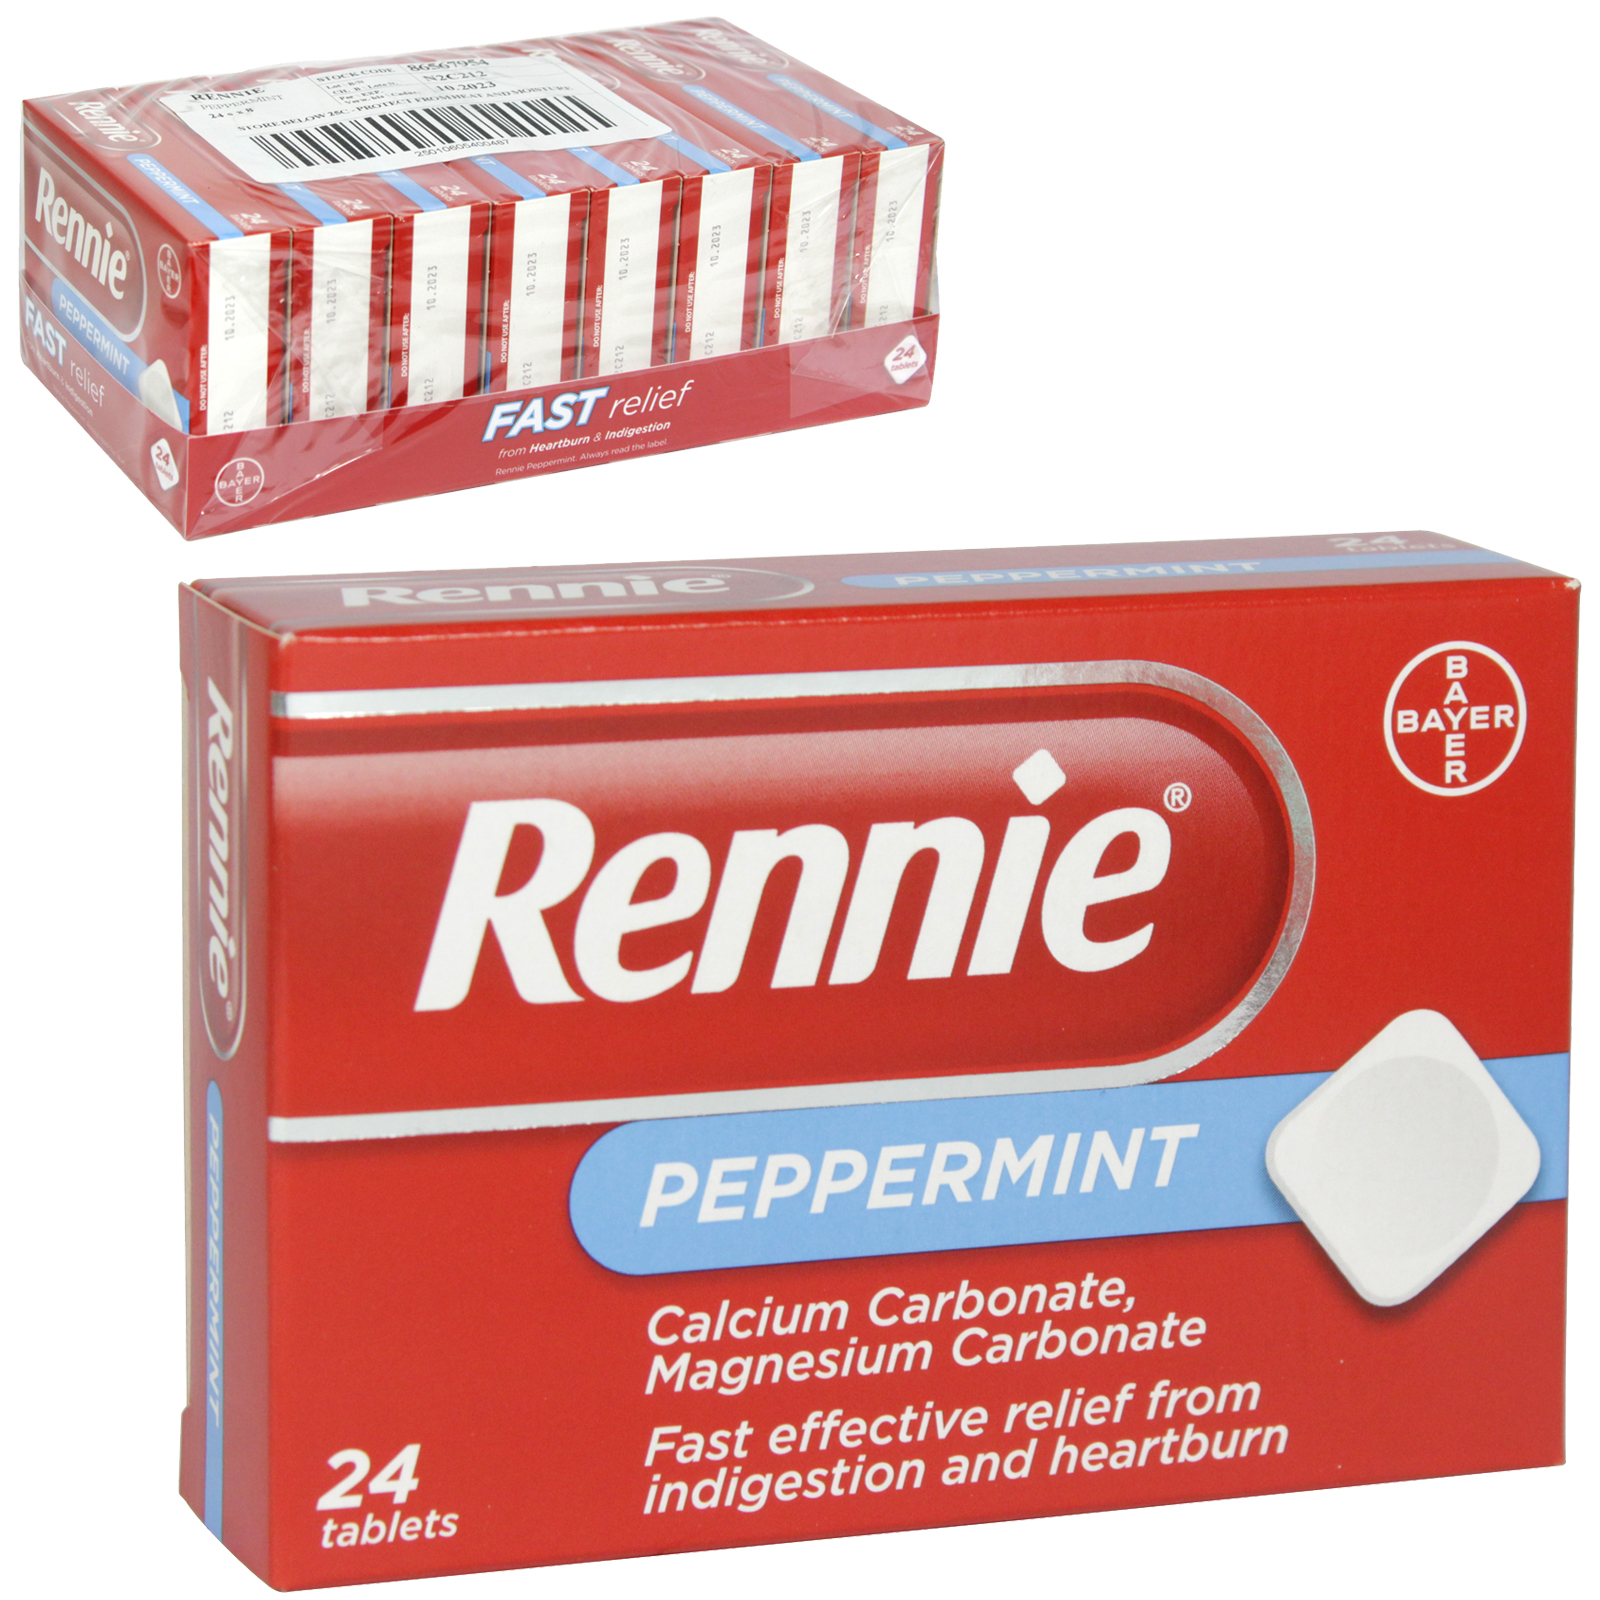 RENNIE DIGESTIF 24S PEPPERMINT X12 (NON RETURNABLE)